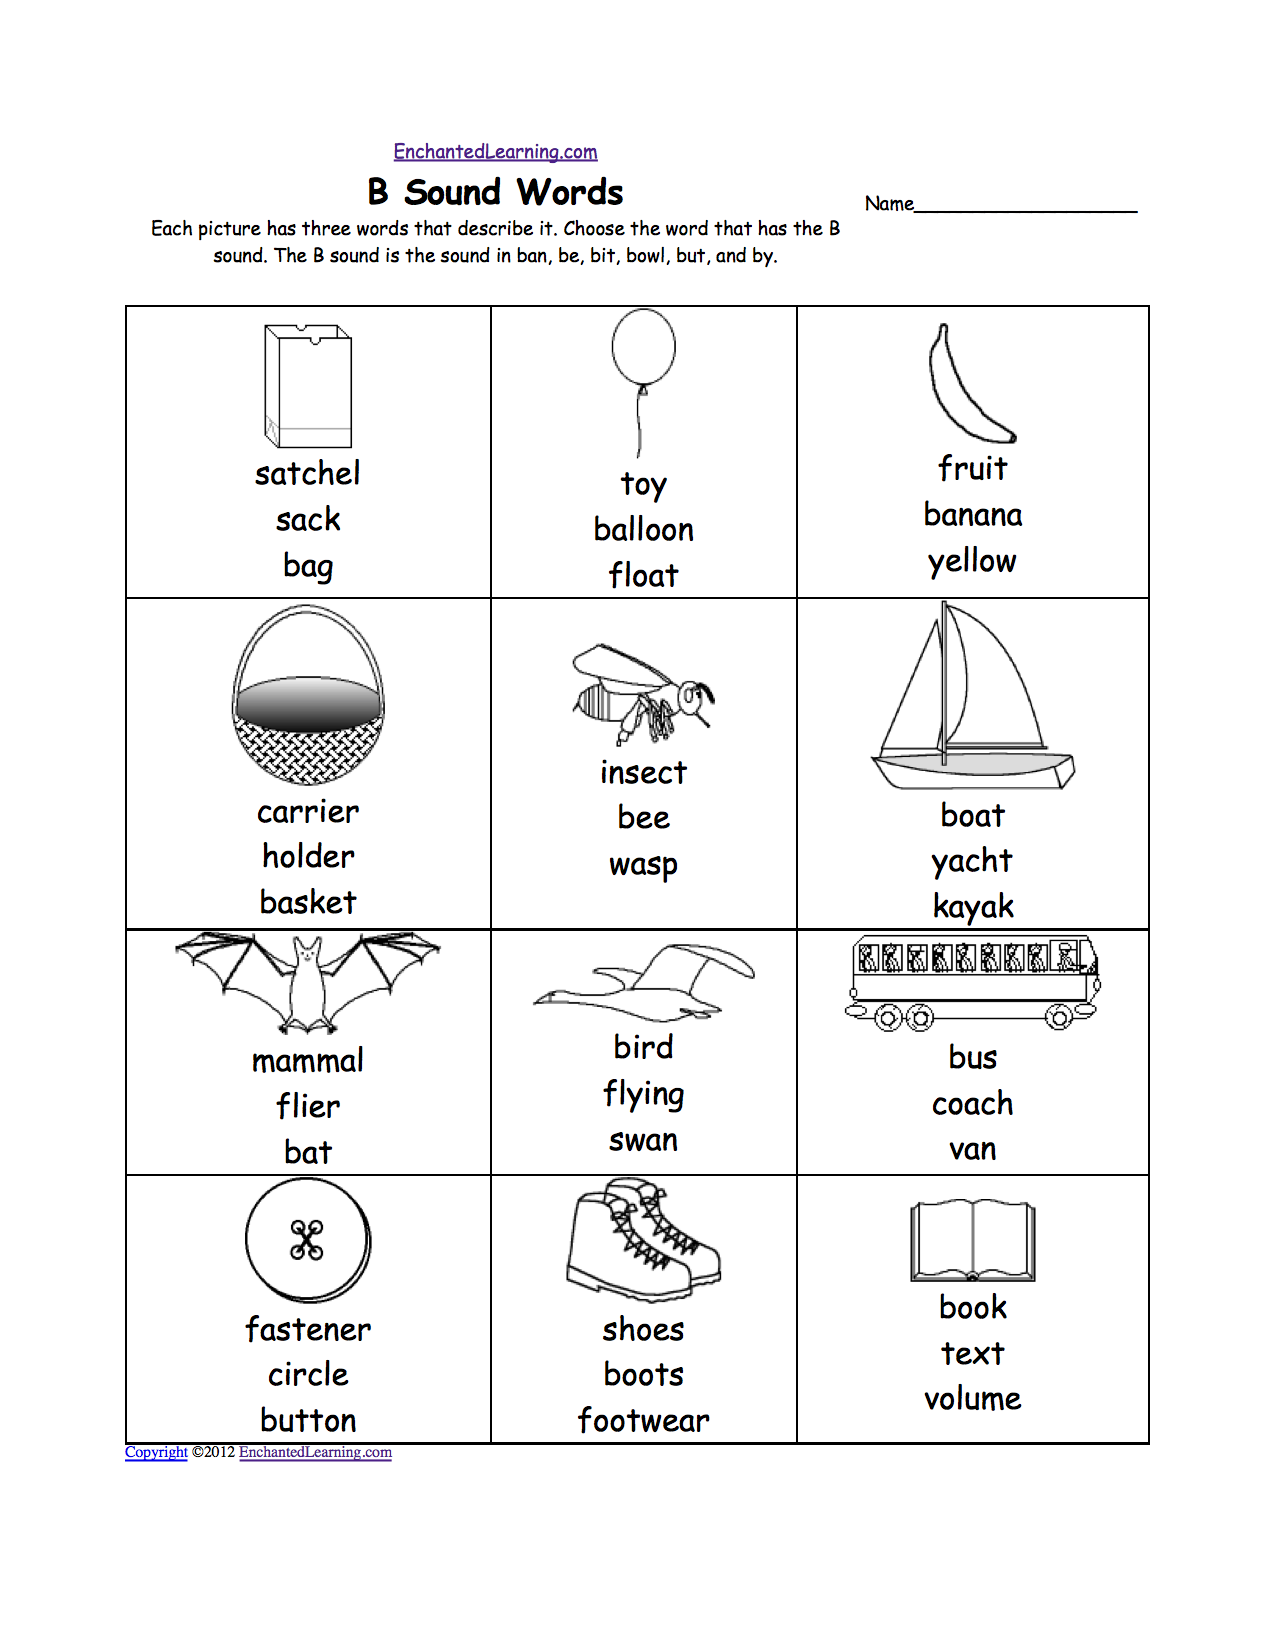 Aldiablosus  Fascinating Phonics Worksheets Multiple Choice Worksheets To Print  With Extraordinary Quotbquot Sound Phonics Worksheet Multiple Choice Each Picture Has Three Words That Describe It Choose The Word That Has A Quotbquot Sound The Quotbquot Sound Is The Sound  With Adorable Worksheets On Laws Of Exponents Also Kindergarten Words Worksheets In Addition Reading Worksheets For Nd Grade Printable And Worksheet For Numbers As Well As Seed Parts Worksheet Additionally Maths Reflection Worksheets From Enchantedlearningcom With Aldiablosus  Extraordinary Phonics Worksheets Multiple Choice Worksheets To Print  With Adorable Quotbquot Sound Phonics Worksheet Multiple Choice Each Picture Has Three Words That Describe It Choose The Word That Has A Quotbquot Sound The Quotbquot Sound Is The Sound  And Fascinating Worksheets On Laws Of Exponents Also Kindergarten Words Worksheets In Addition Reading Worksheets For Nd Grade Printable From Enchantedlearningcom